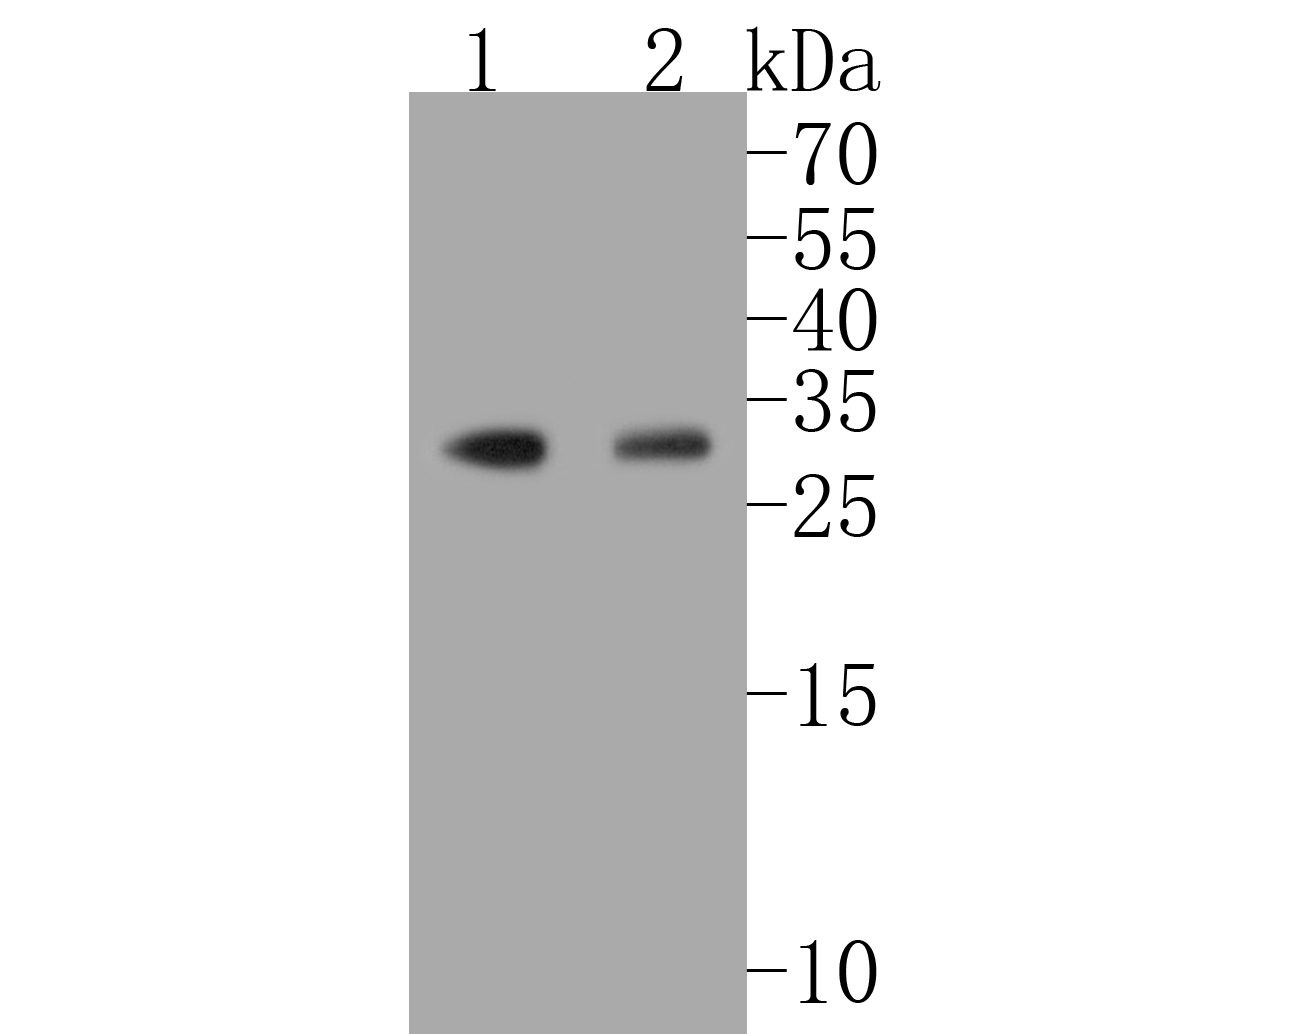 Western blot analysis of Hes1 on different lysates. Proteins were transferred to a PVDF membrane and blocked with 5% BSA in PBS for 1 hour at room temperature. The primary antibody (ET1610-97, 1/500) was used in 5% BSA at room temperature for 2 hours. Goat Anti-Rabbit IgG - HRP Secondary Antibody (HA1001) at 1:5,000 dilution was used for 1 hour at room temperature.<br /> Positive control: <br /> Lane 1: SiHa cell lysate<br /> Lane 2: SK-Br-3 cell lysate